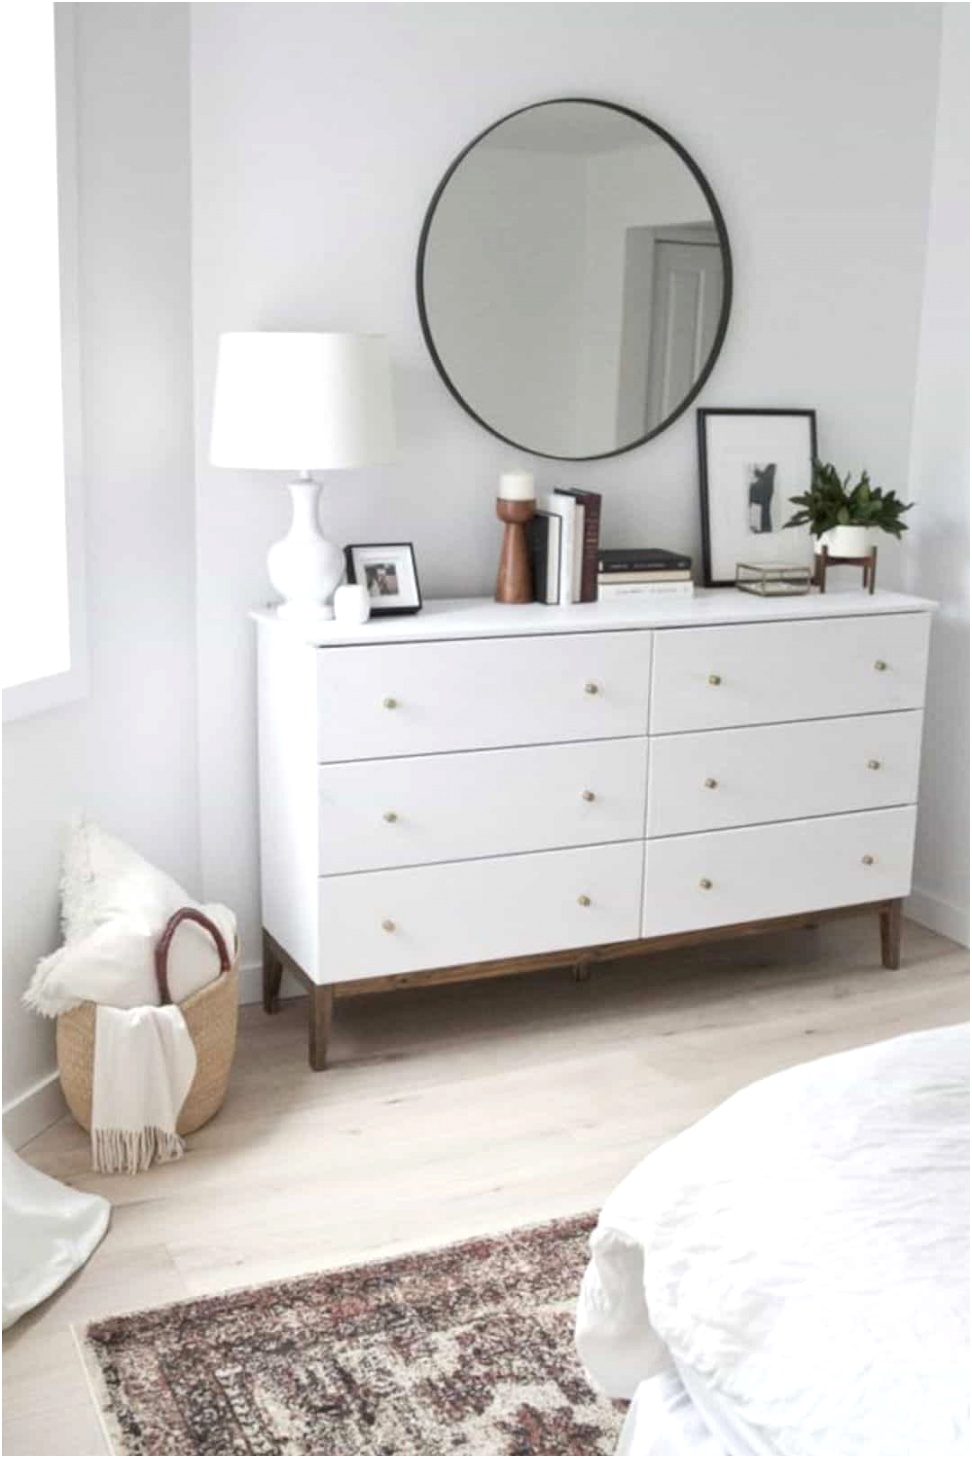 16 brilliant painted furniture ideas to transform your bedroom 15